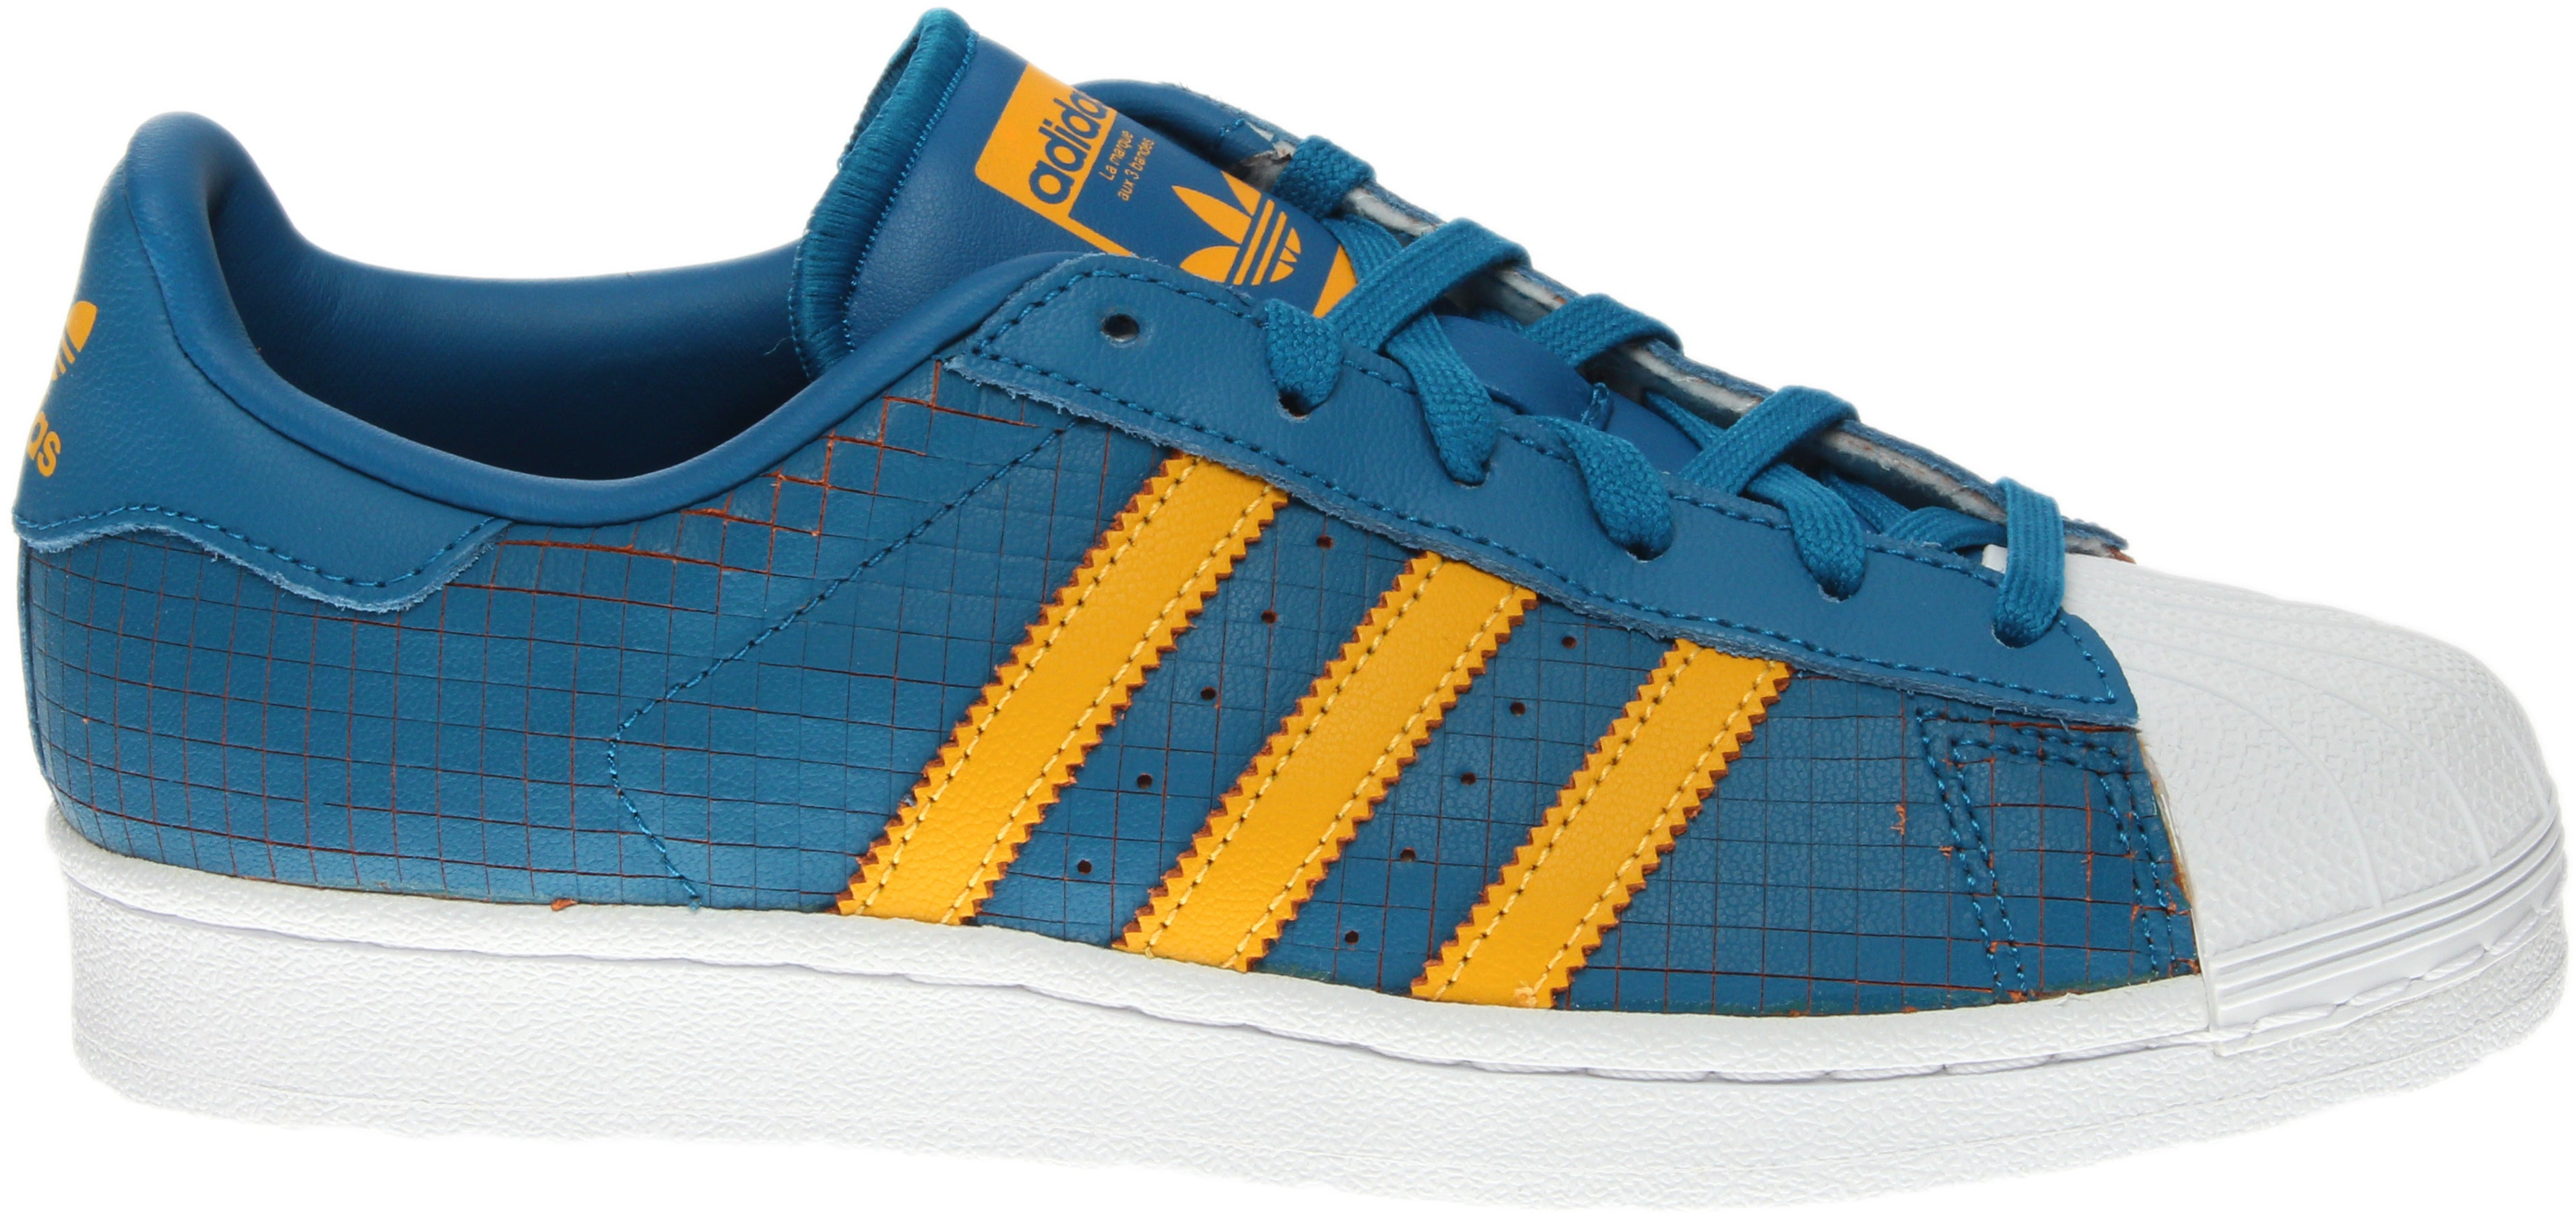 adidas Superstar Blue - Mens  - Size